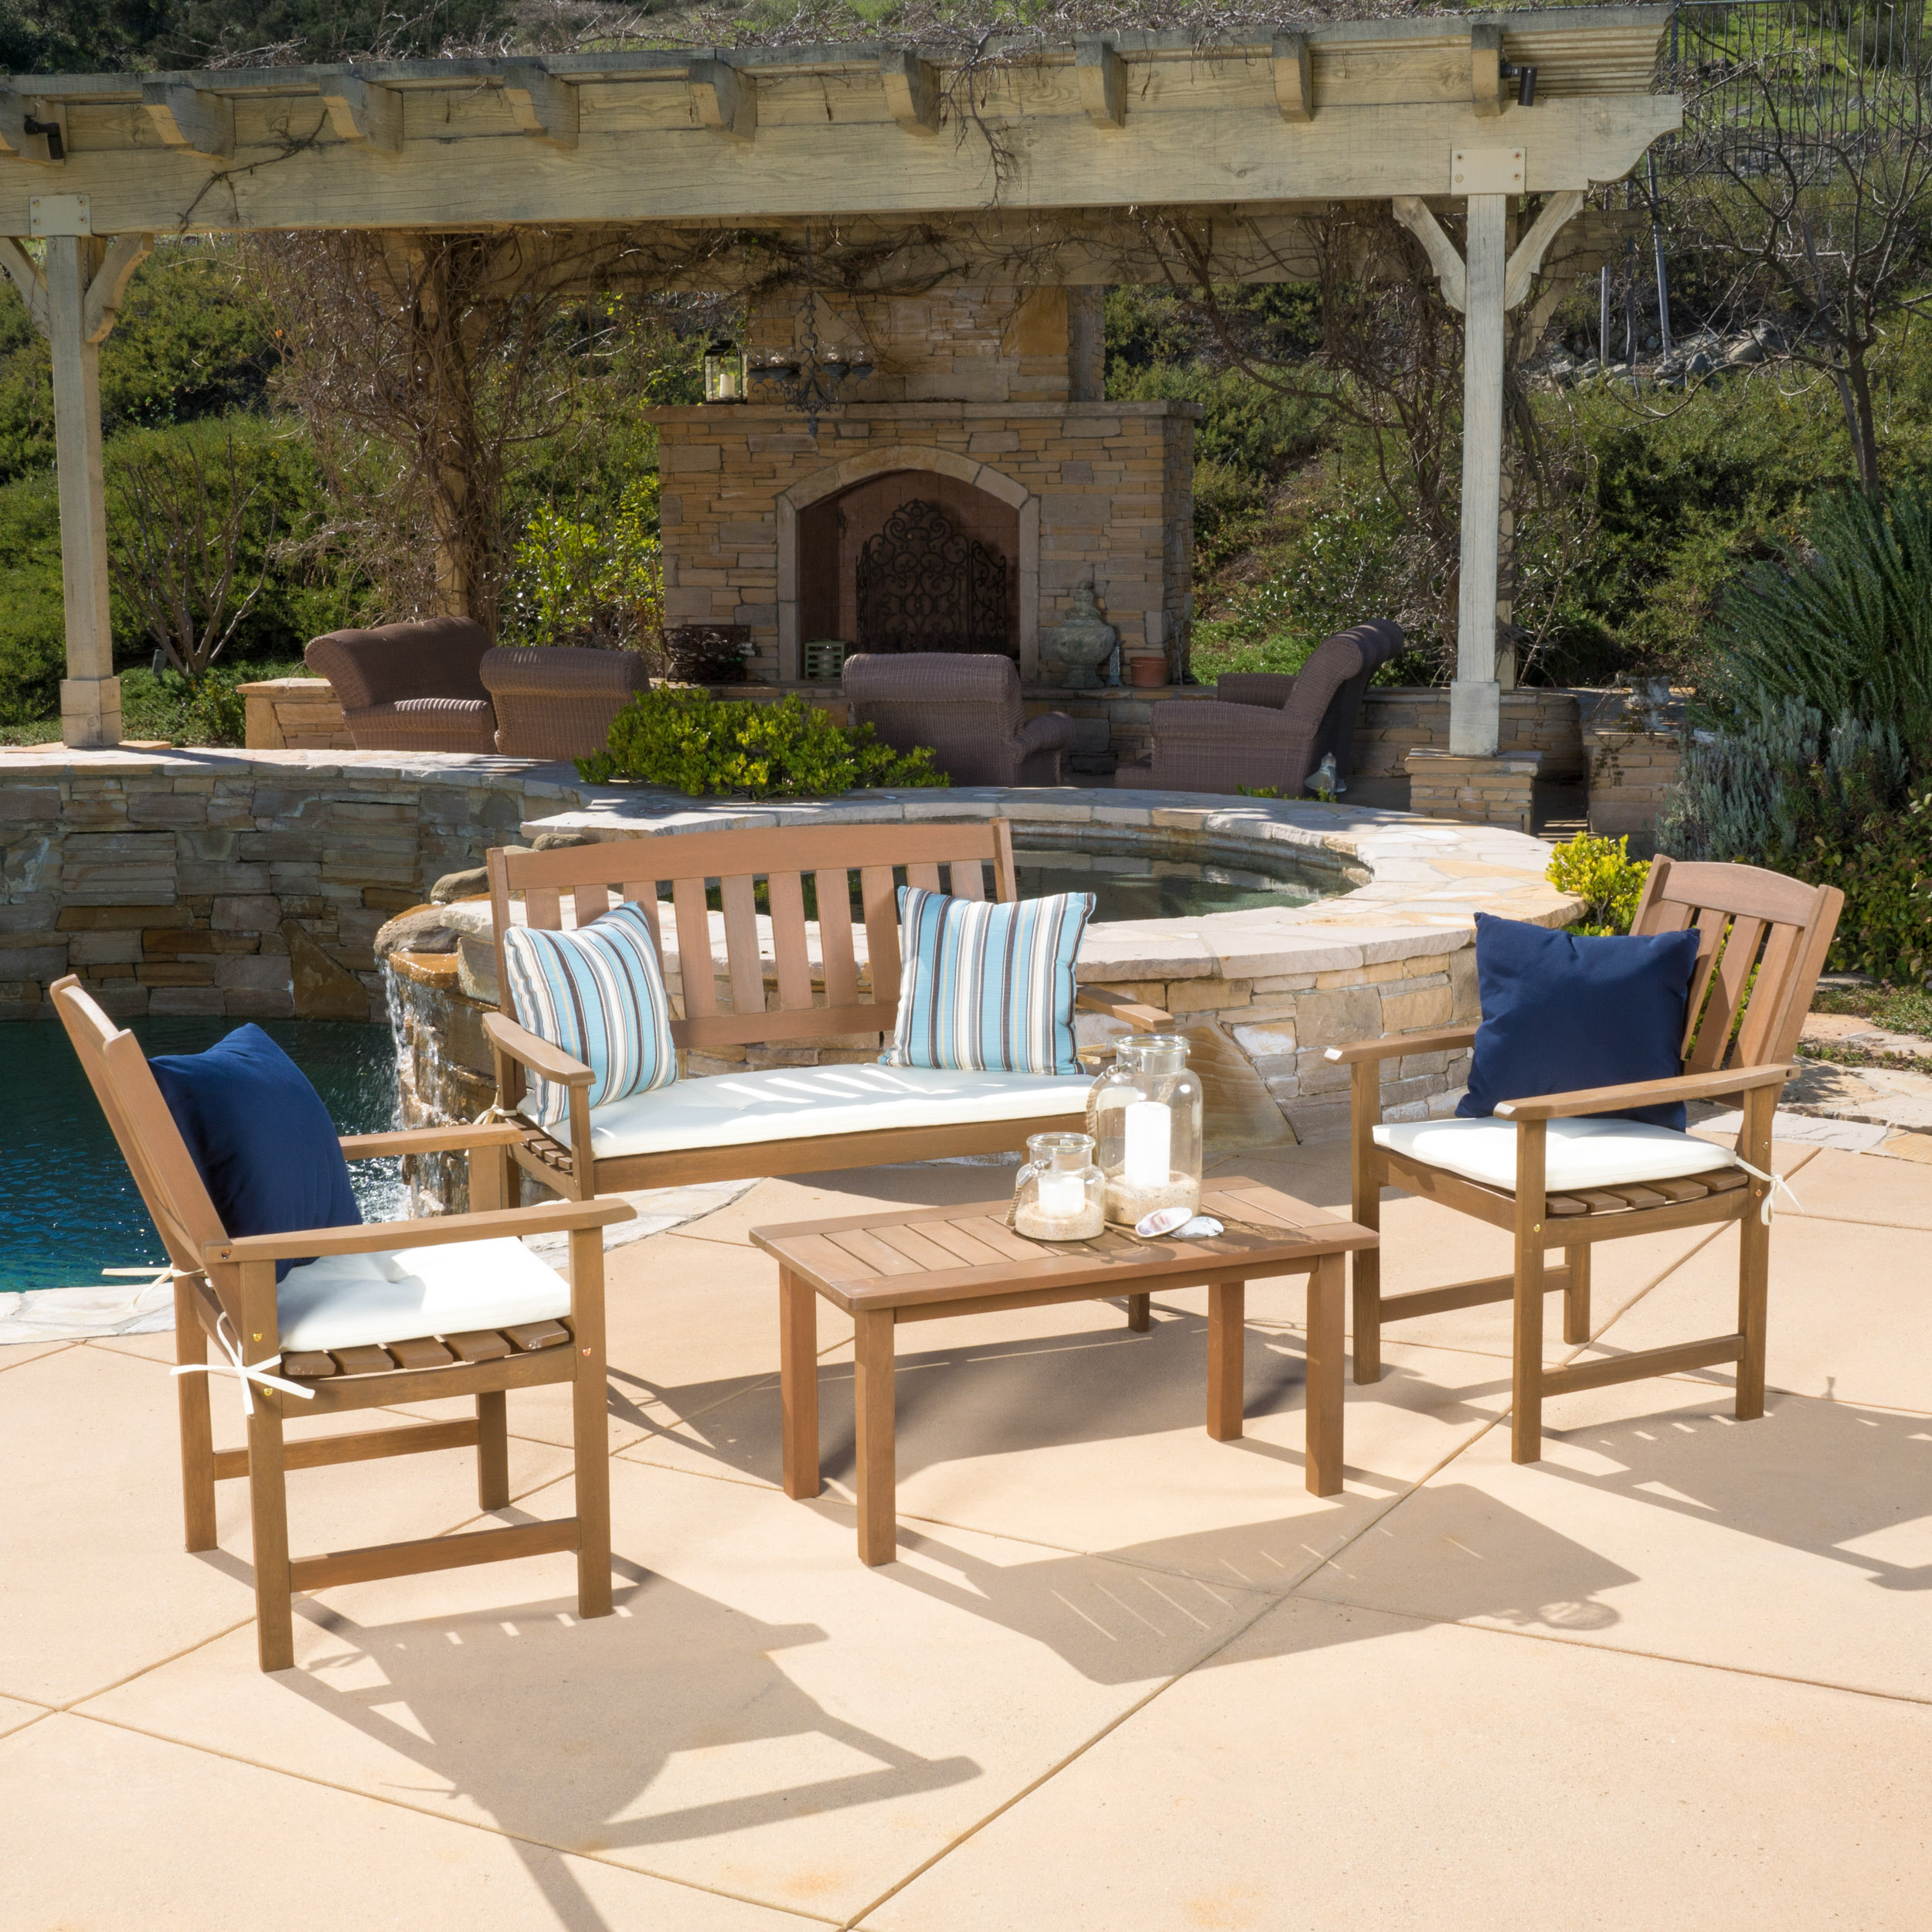 Emilia Outdoor Meranti 4 piece Wood Chat Set with Cushions, Honey Oak, Cream